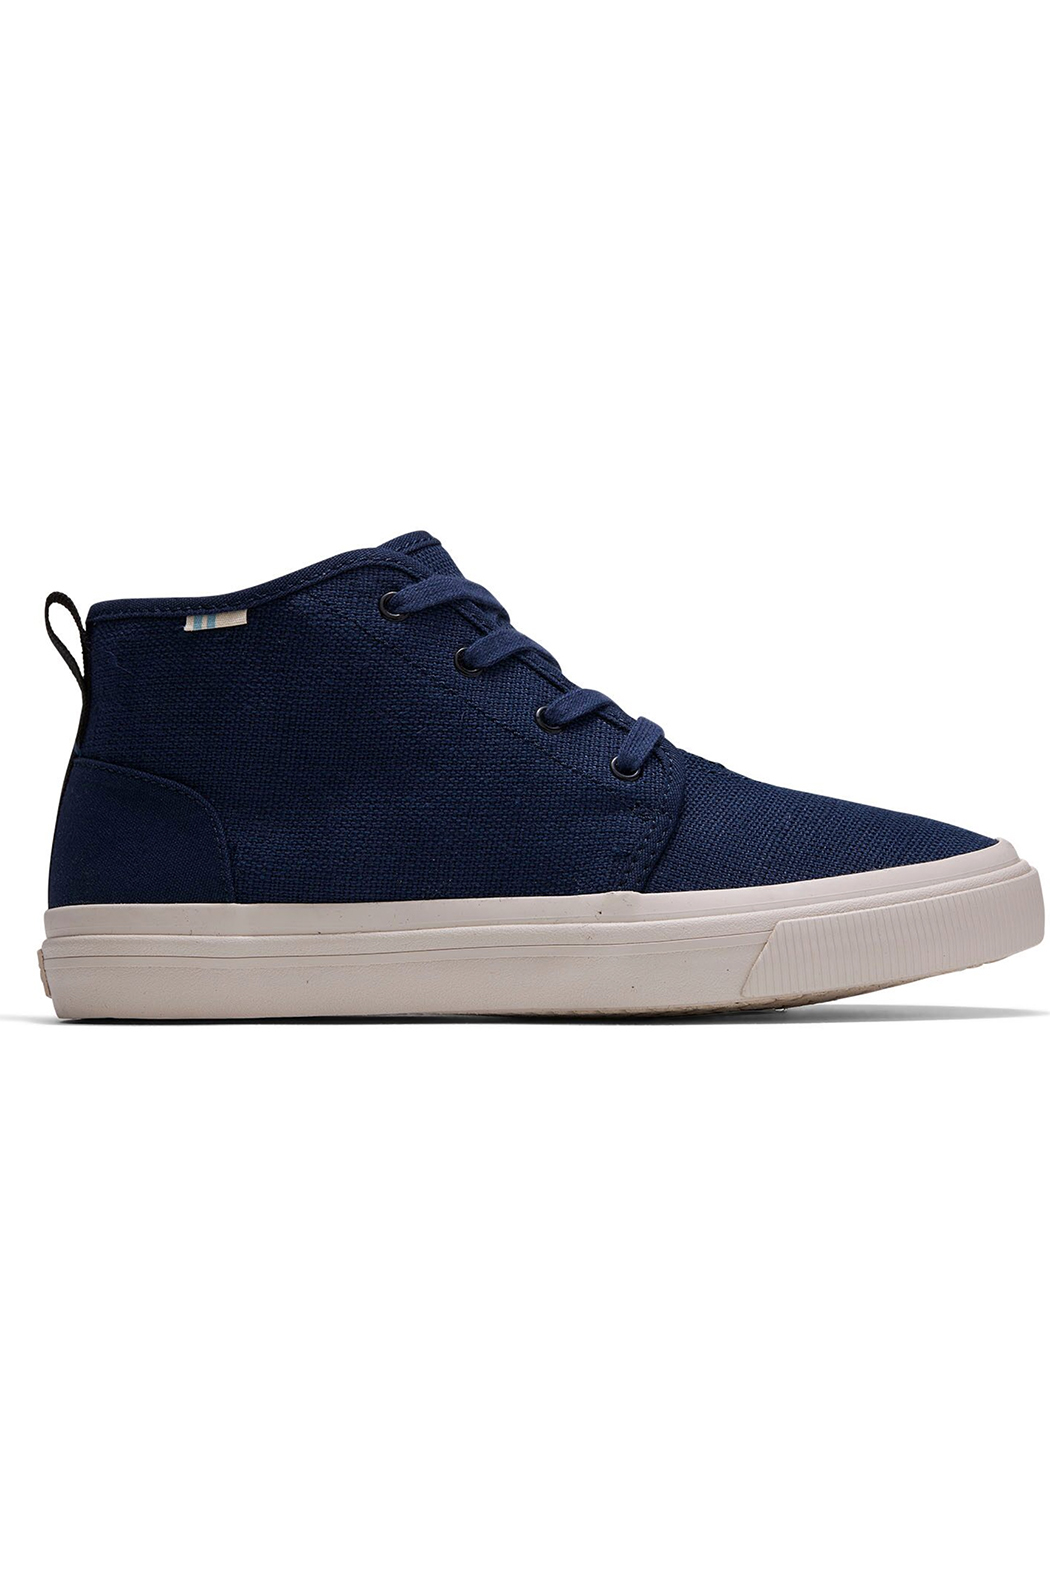 TOMS Youth Carlo Canvas Mid Sneakers - Front Cropped Image